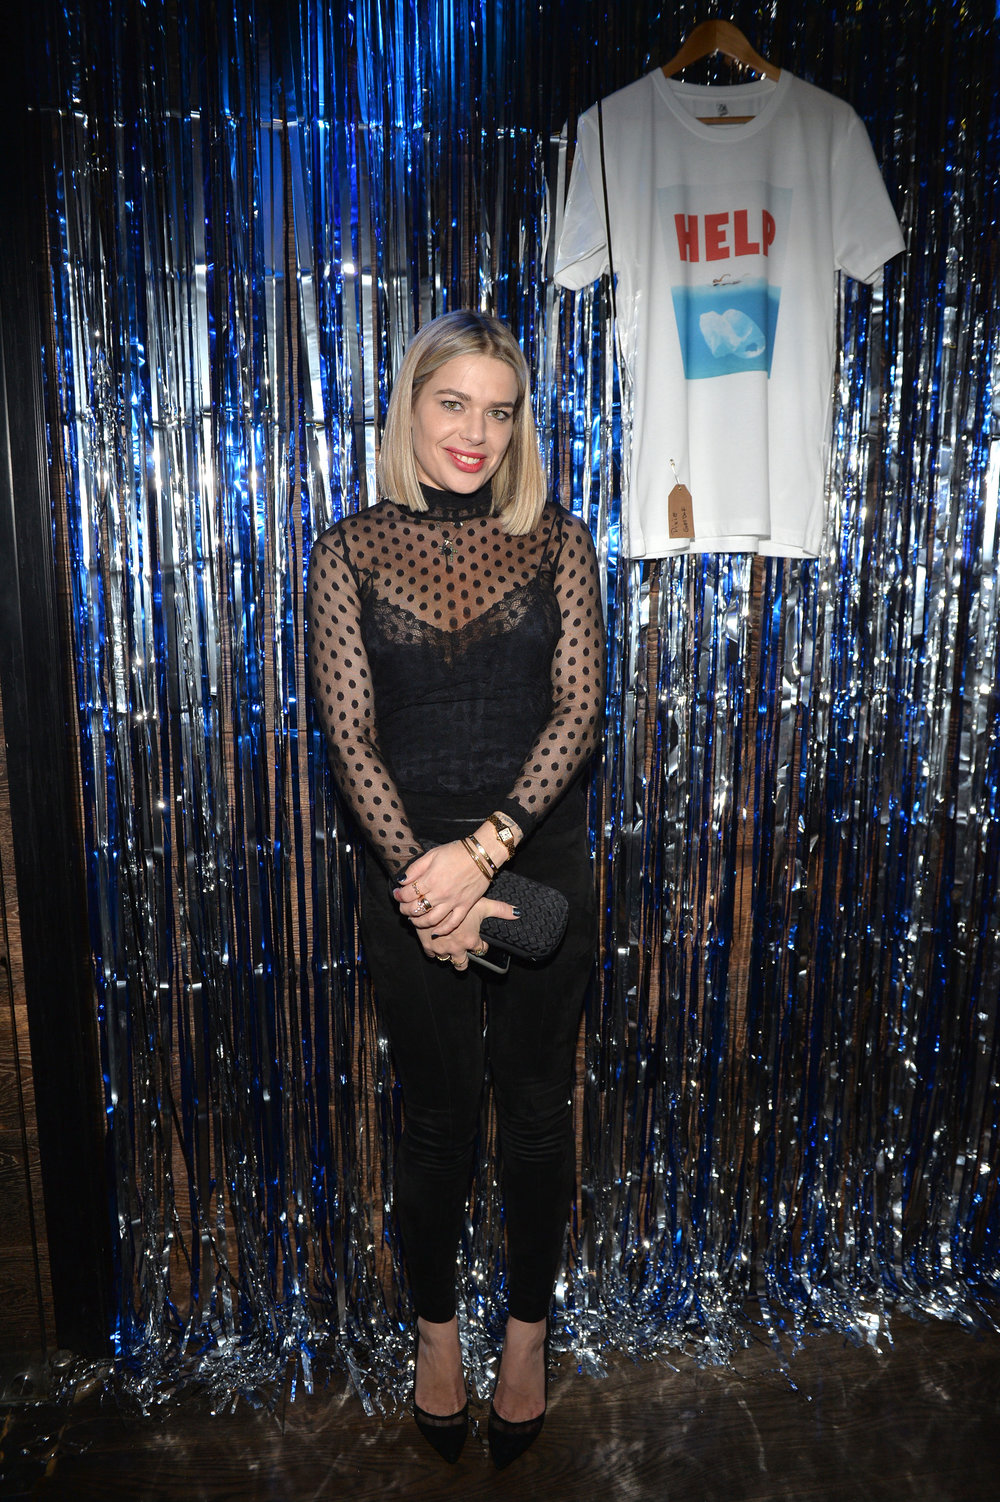 DMB-Project 0, Unemployed Magazine And The London EDITION Host Party To Celebrate The Launch Of Salt-T110.JPG